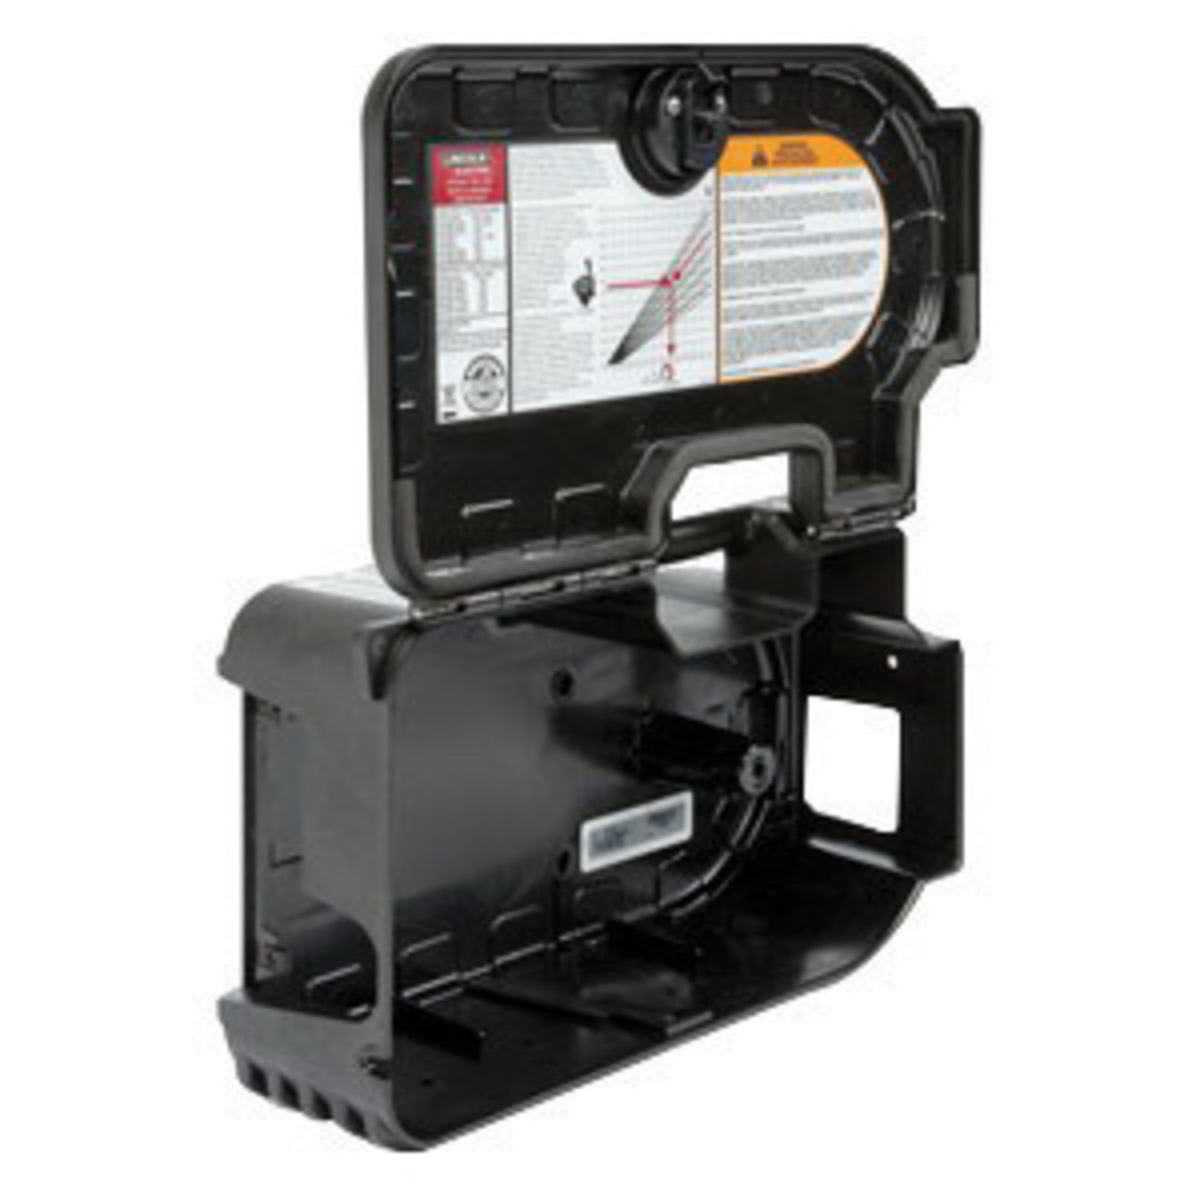 lincoln electric case 12 Lincoln electric parts - case front - g3860-12 lincoln electric parts - case front - g3860-12 you will earn 63 points for purchasing this product qty add to cart.